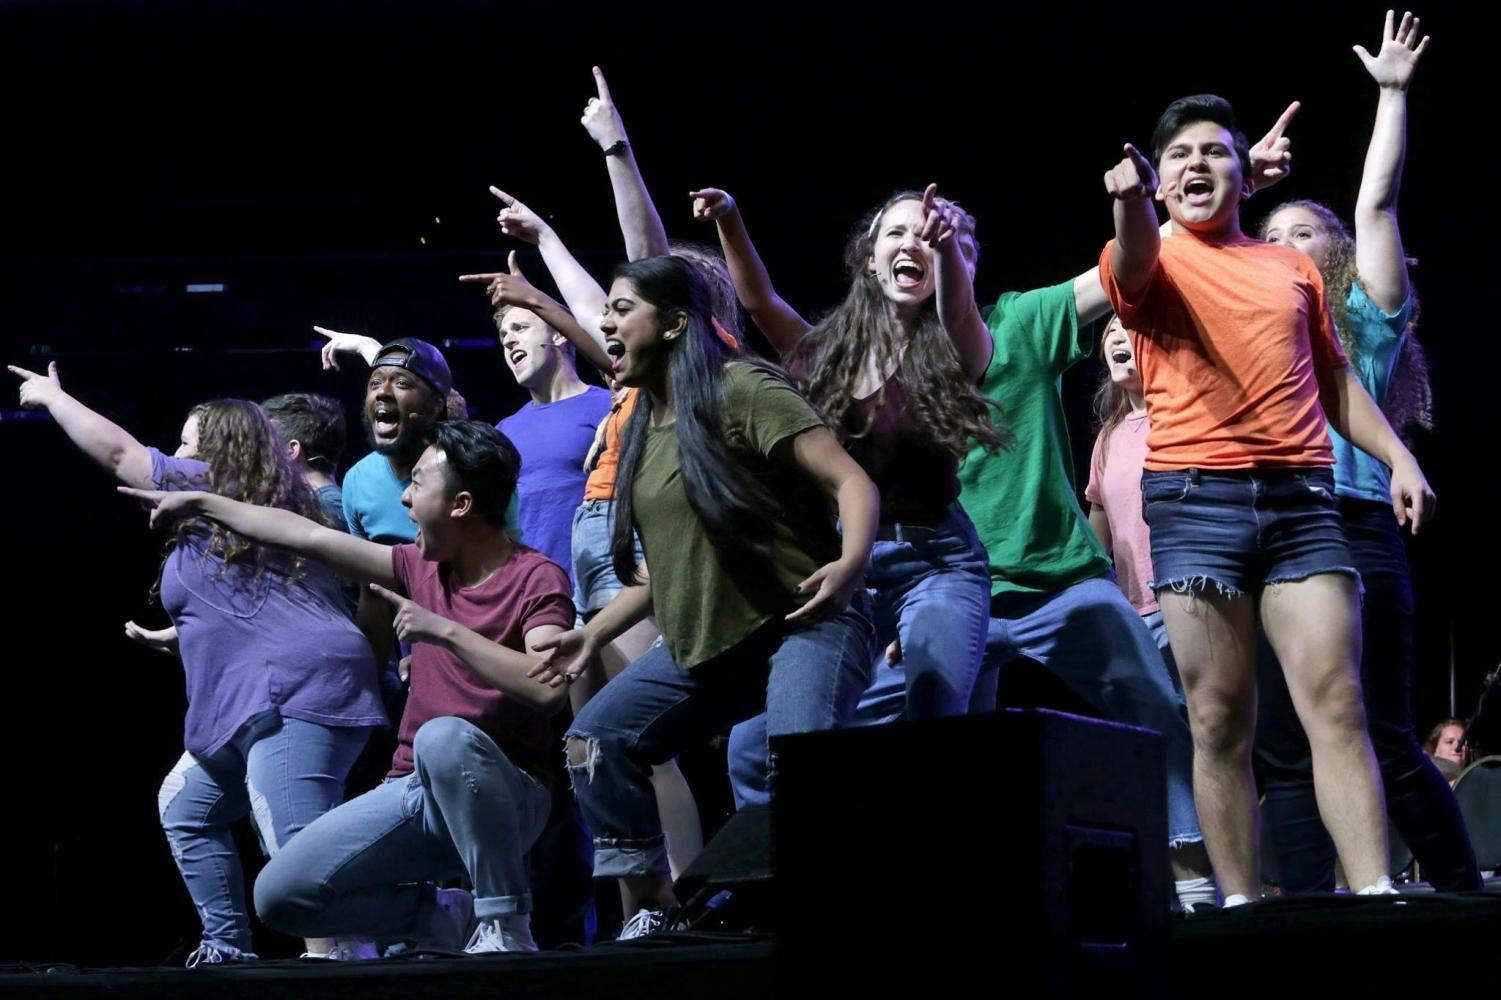 Students performing in the annual Reality Show at Barclays Center.